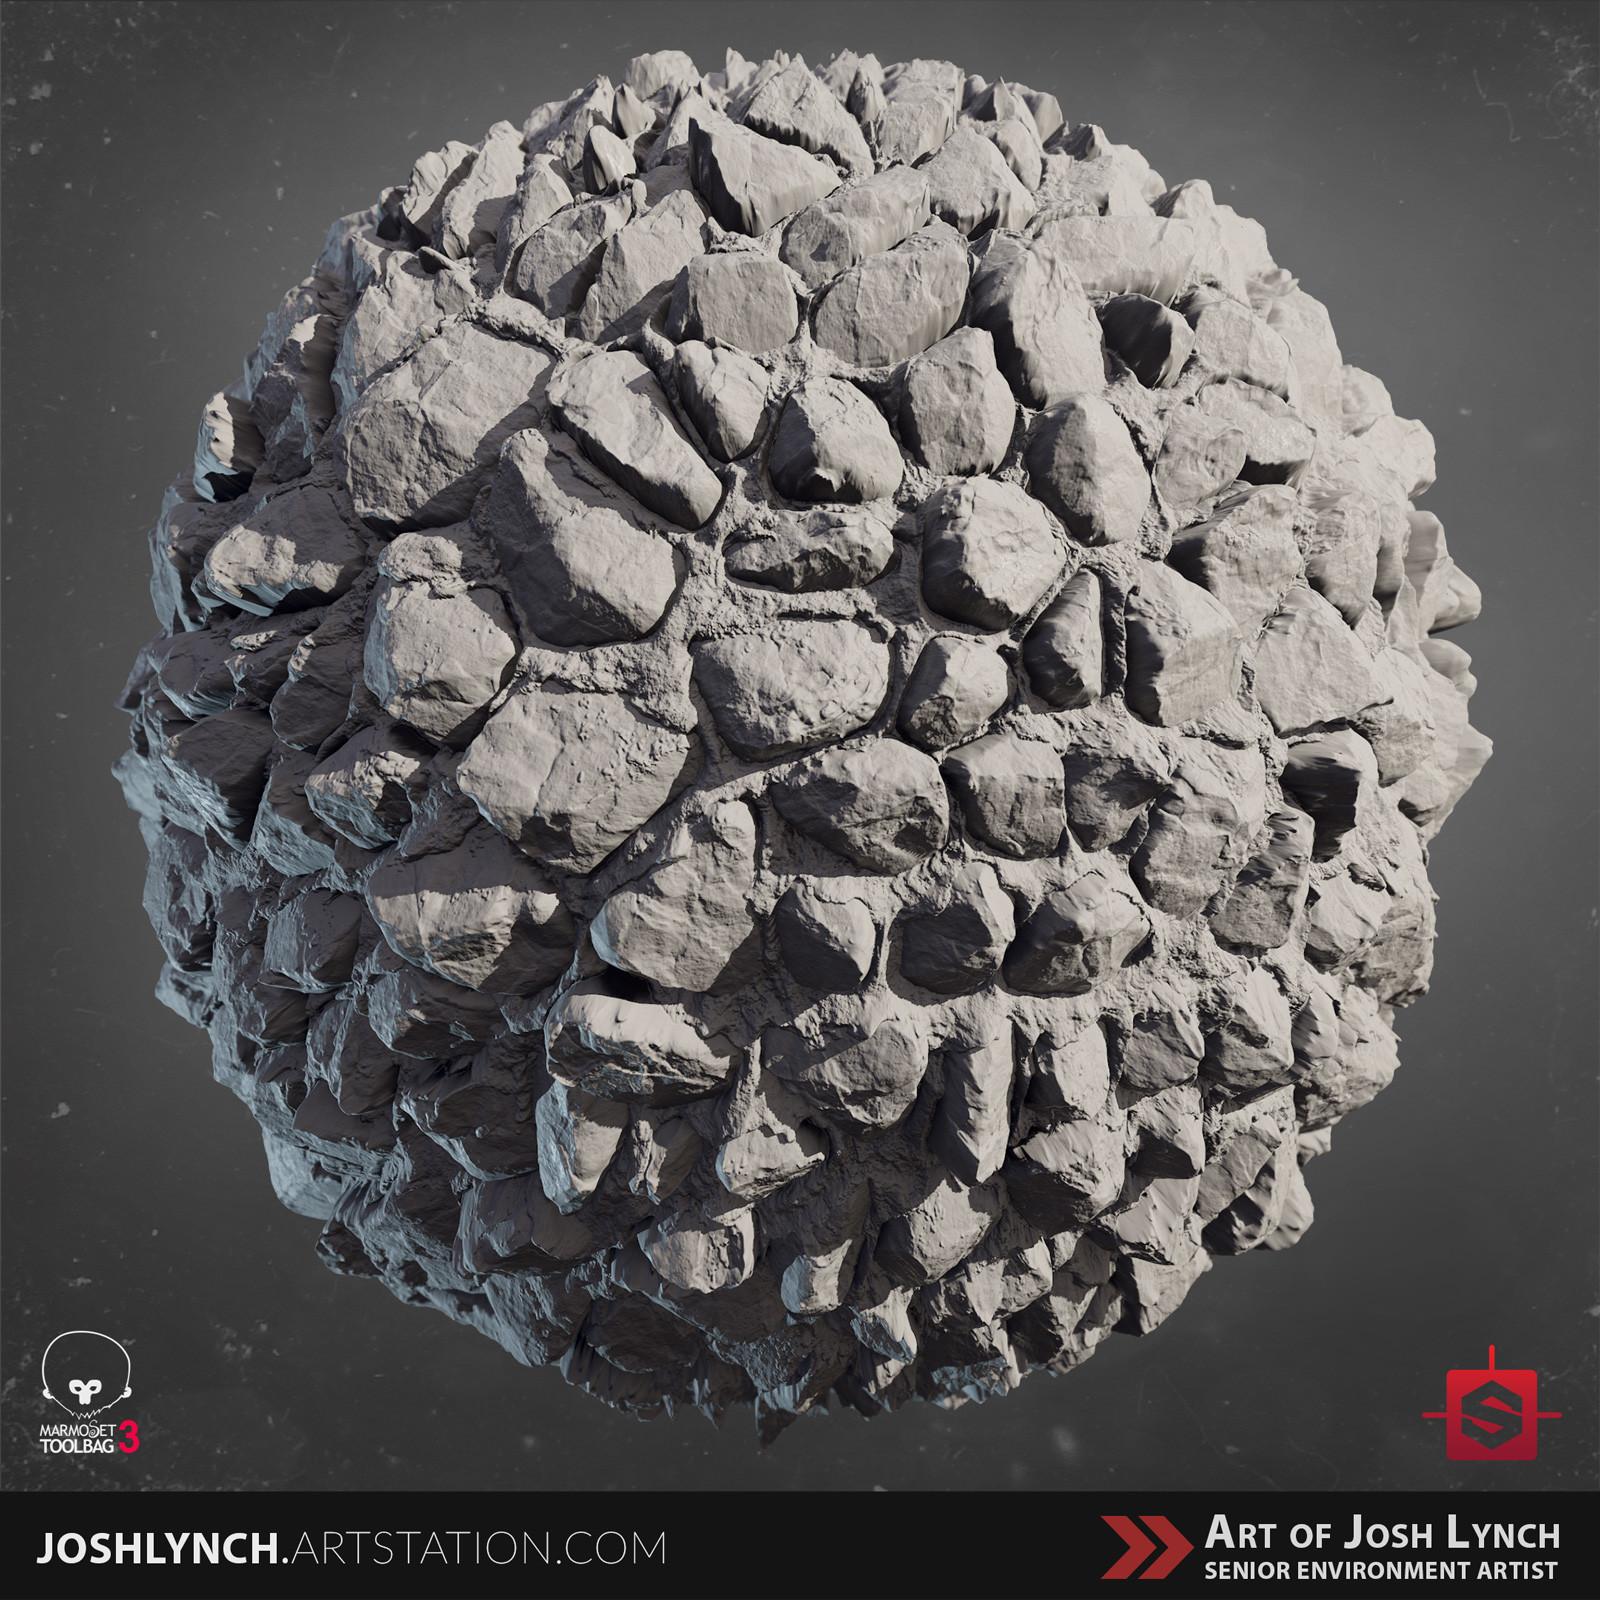 Joshua lynch artstation masterclass layout comp square sphere 01 gray